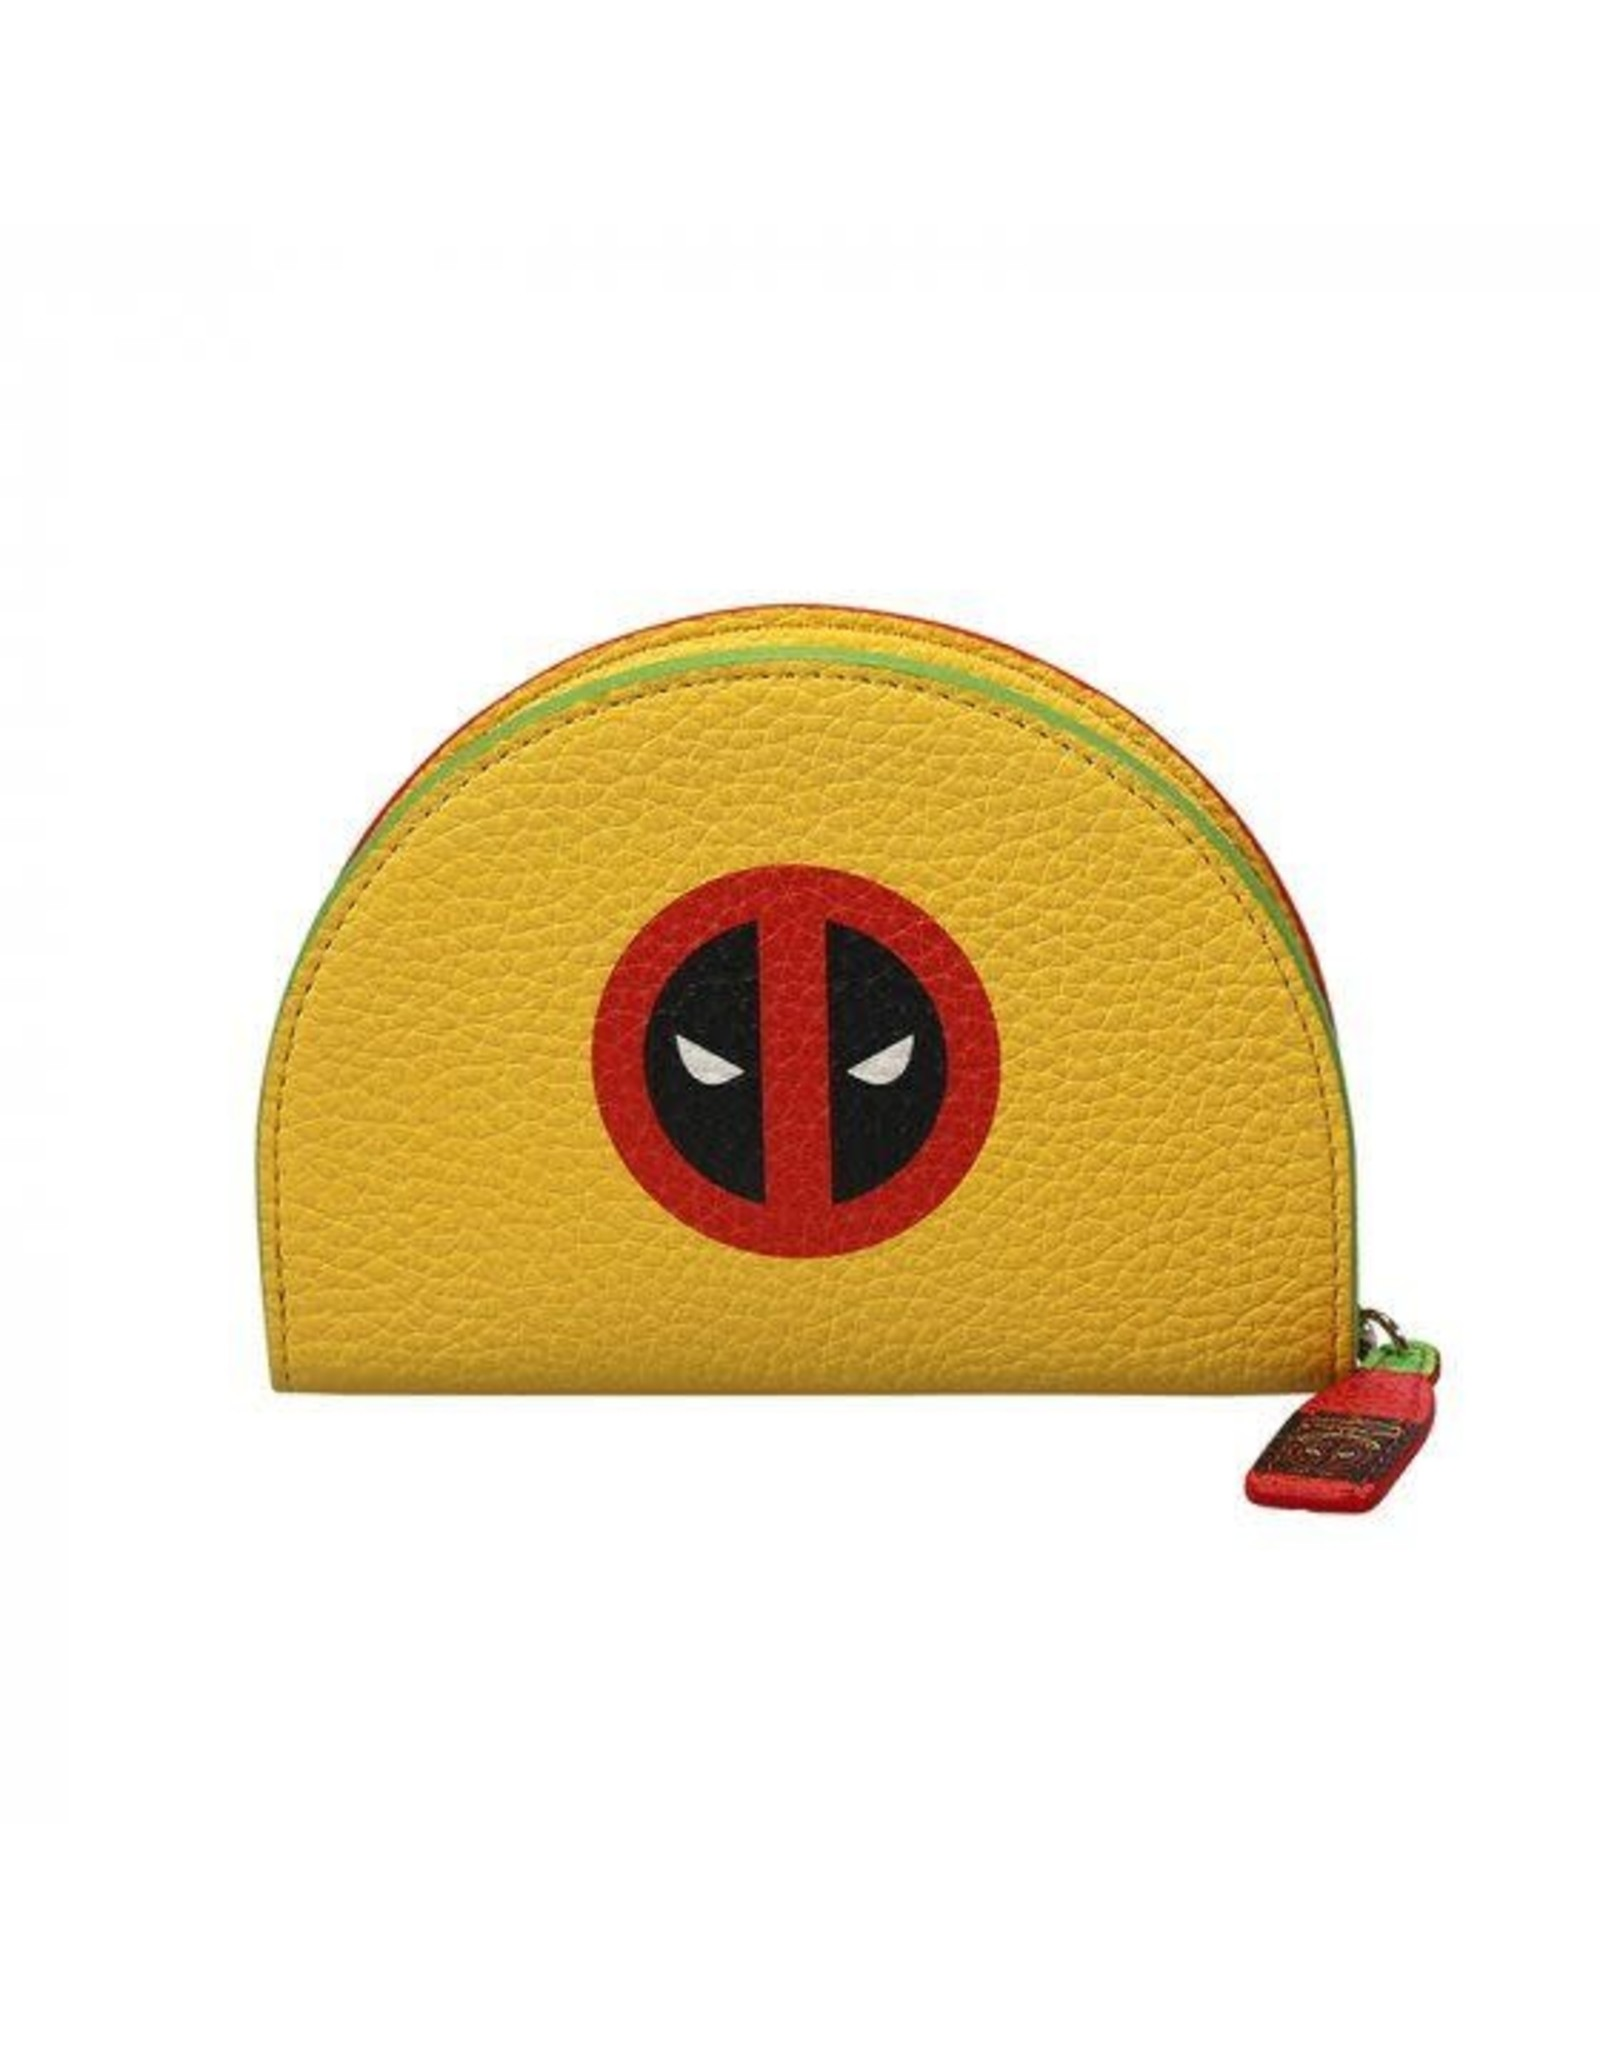 Half Moon Bay DEADPOOL Coin Purse - Taco